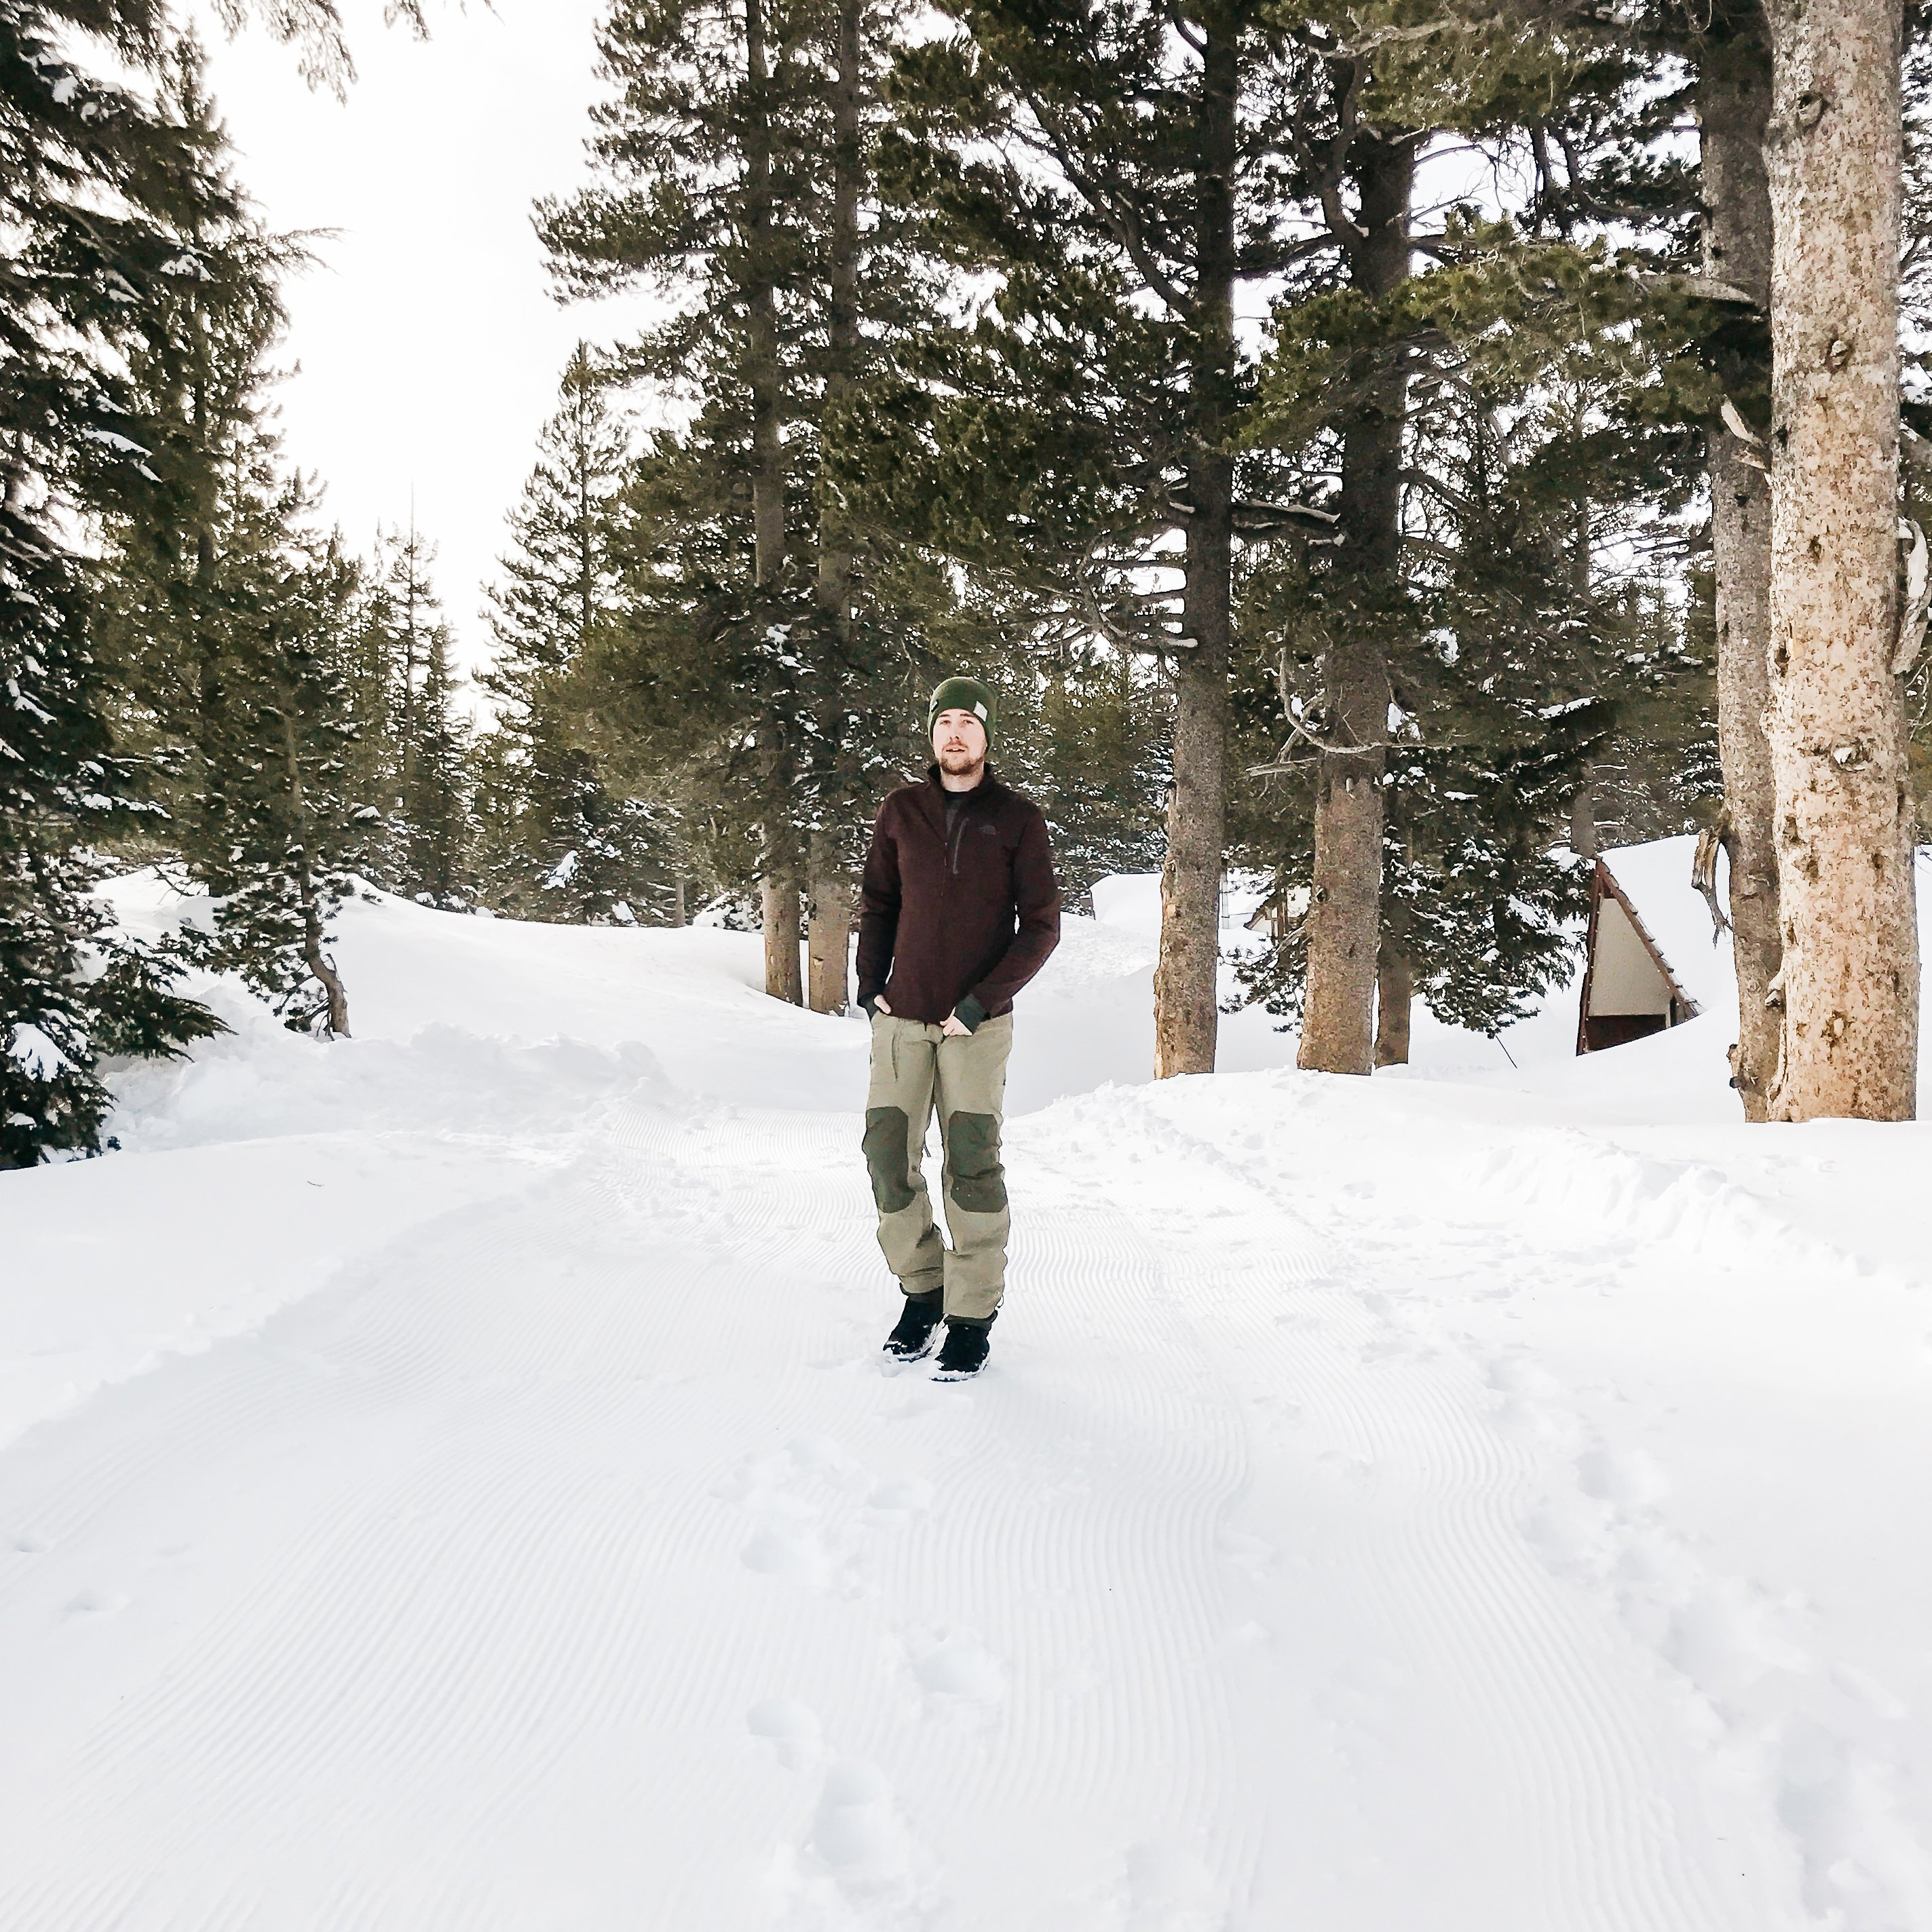 paul mitchell, mammoth lakes california, mammoth mountain, toyota grand prix, travel blogger